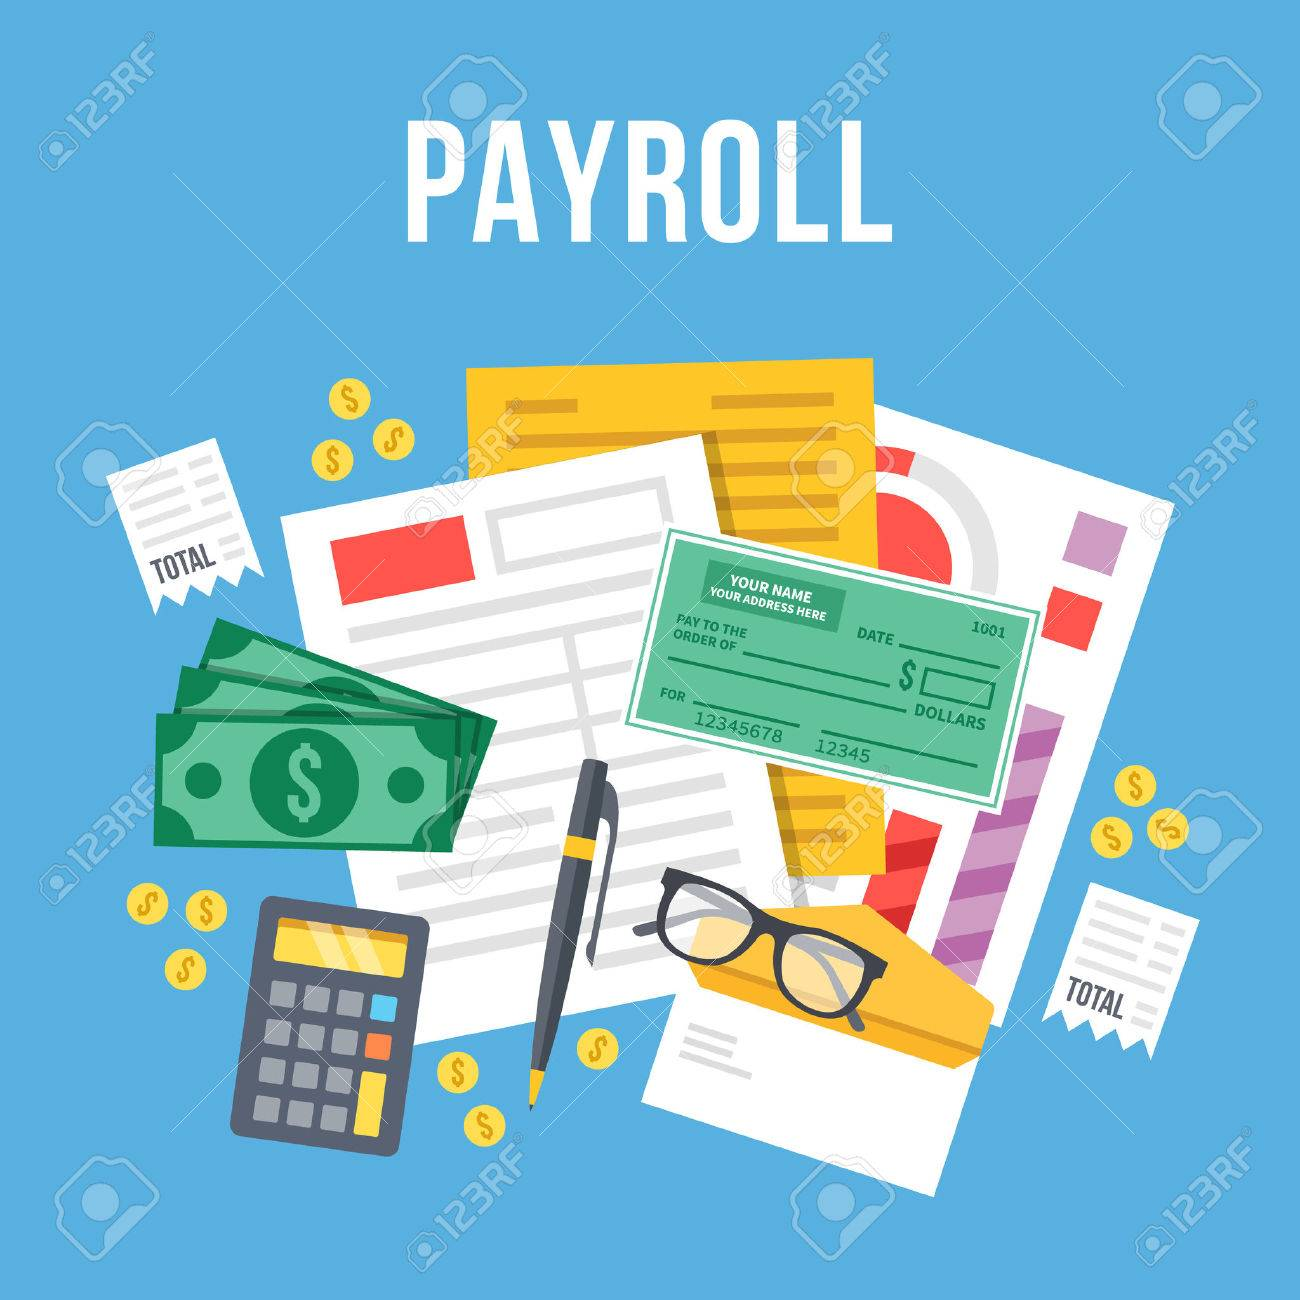 Payroll, Invoice Sheet Flat Illustration. Payroll Template, Calculate  Salary, Budget Concepts.  Payroll Invoice